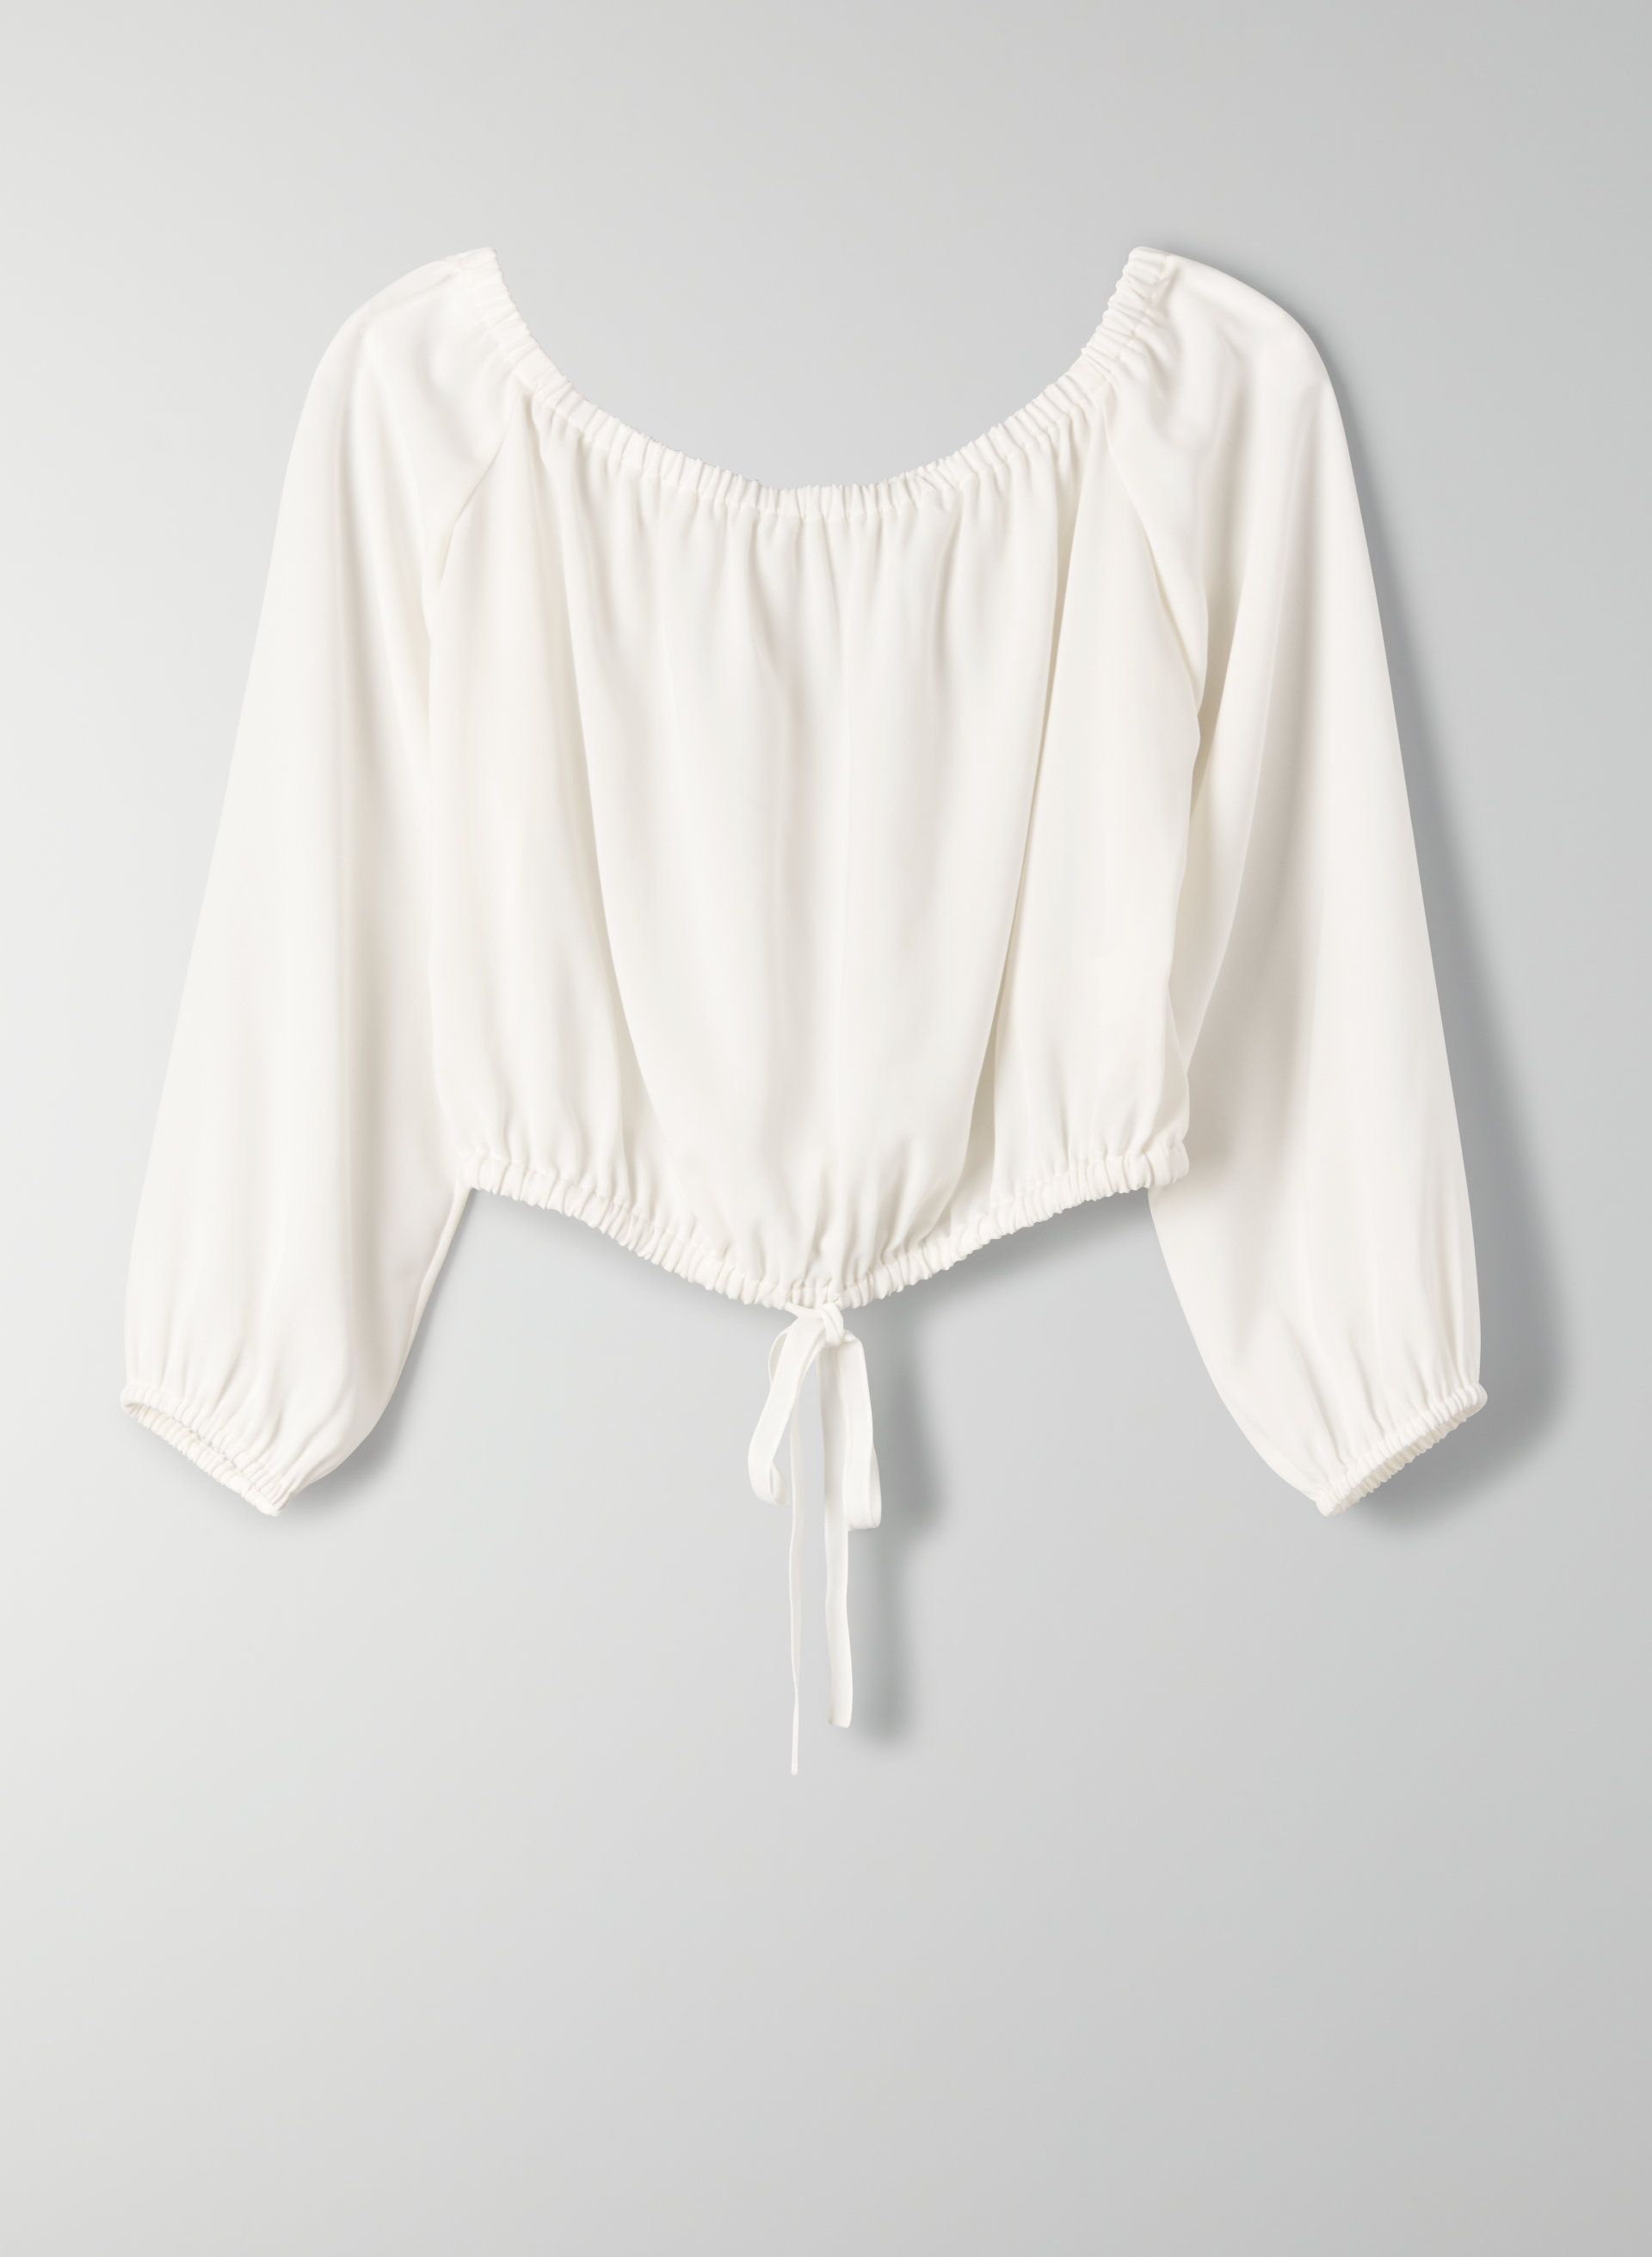 622ec2f86b2 ELEANORA BLOUSE - Cropped, off-the-shoulder top